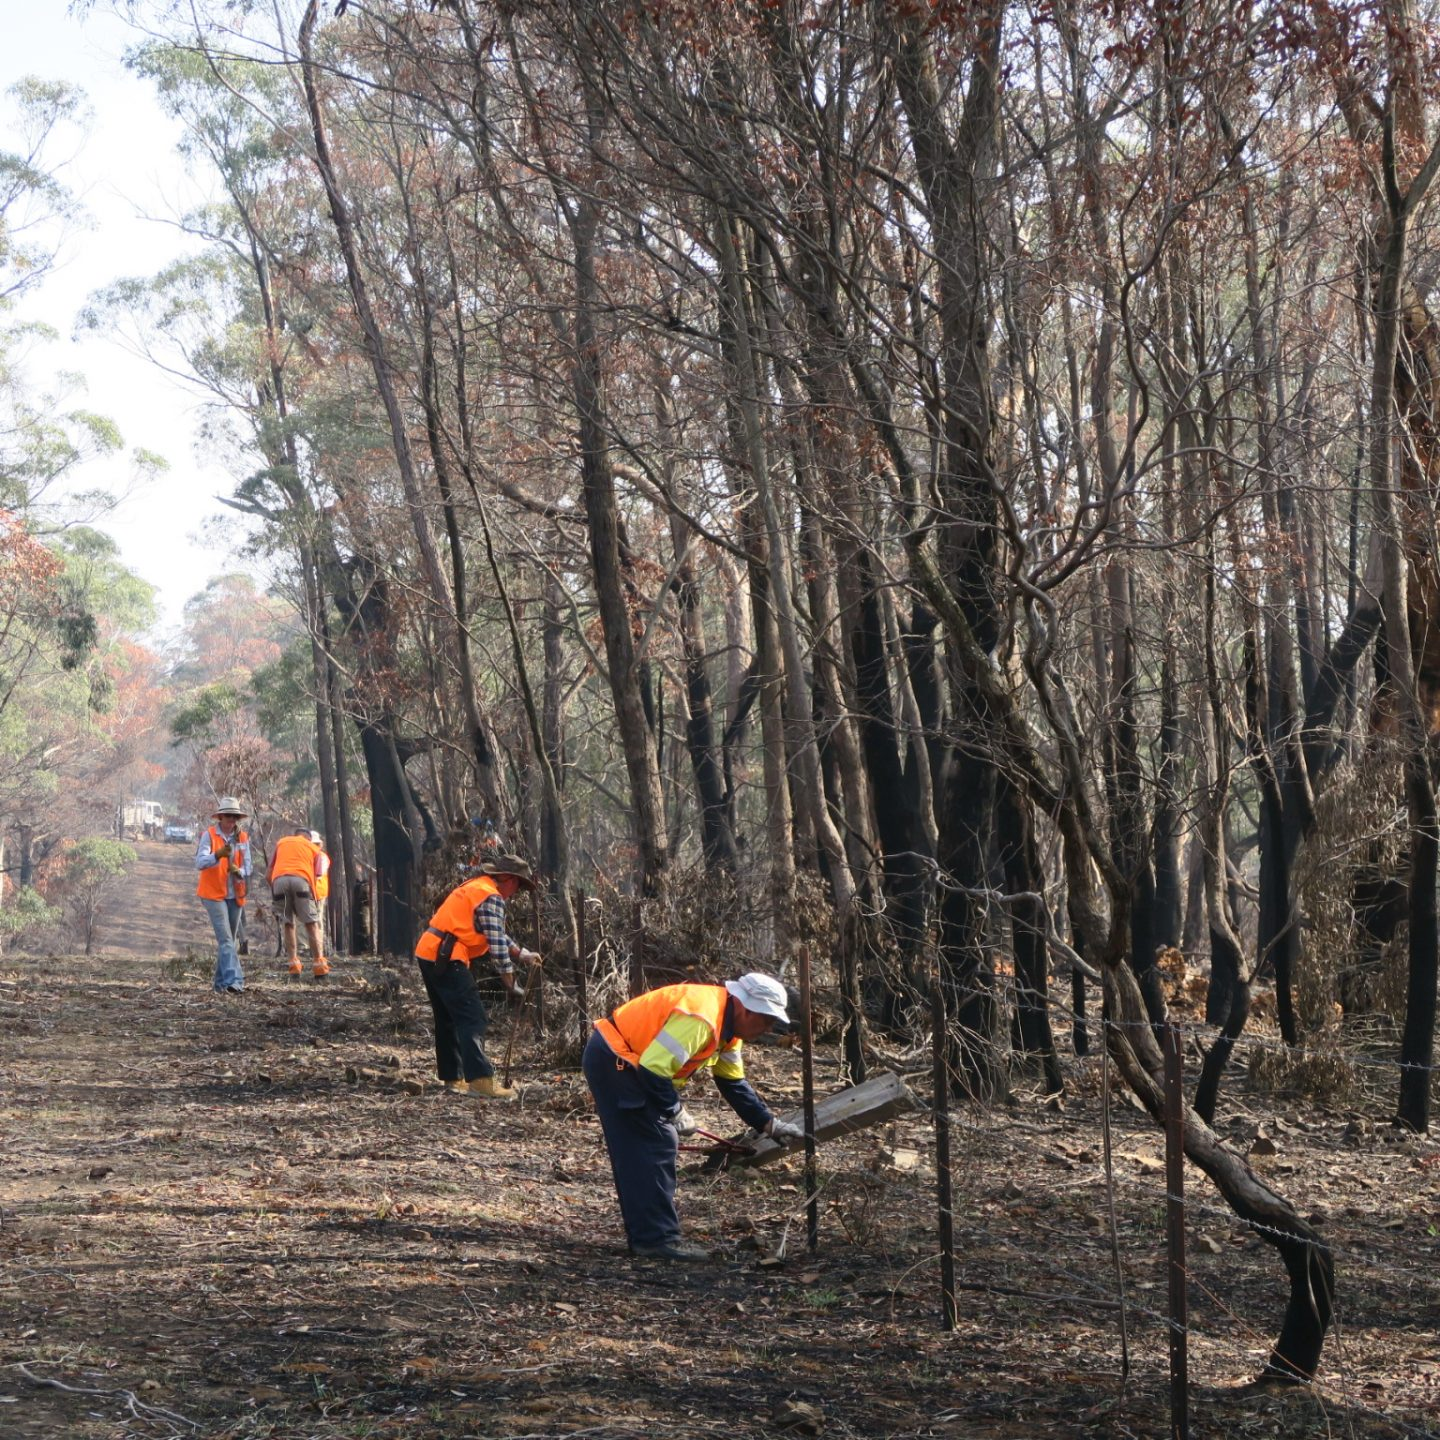 A landscape blackened by fire, with charred trees. Four figures wearing high-vis, bending down, repairing fences.